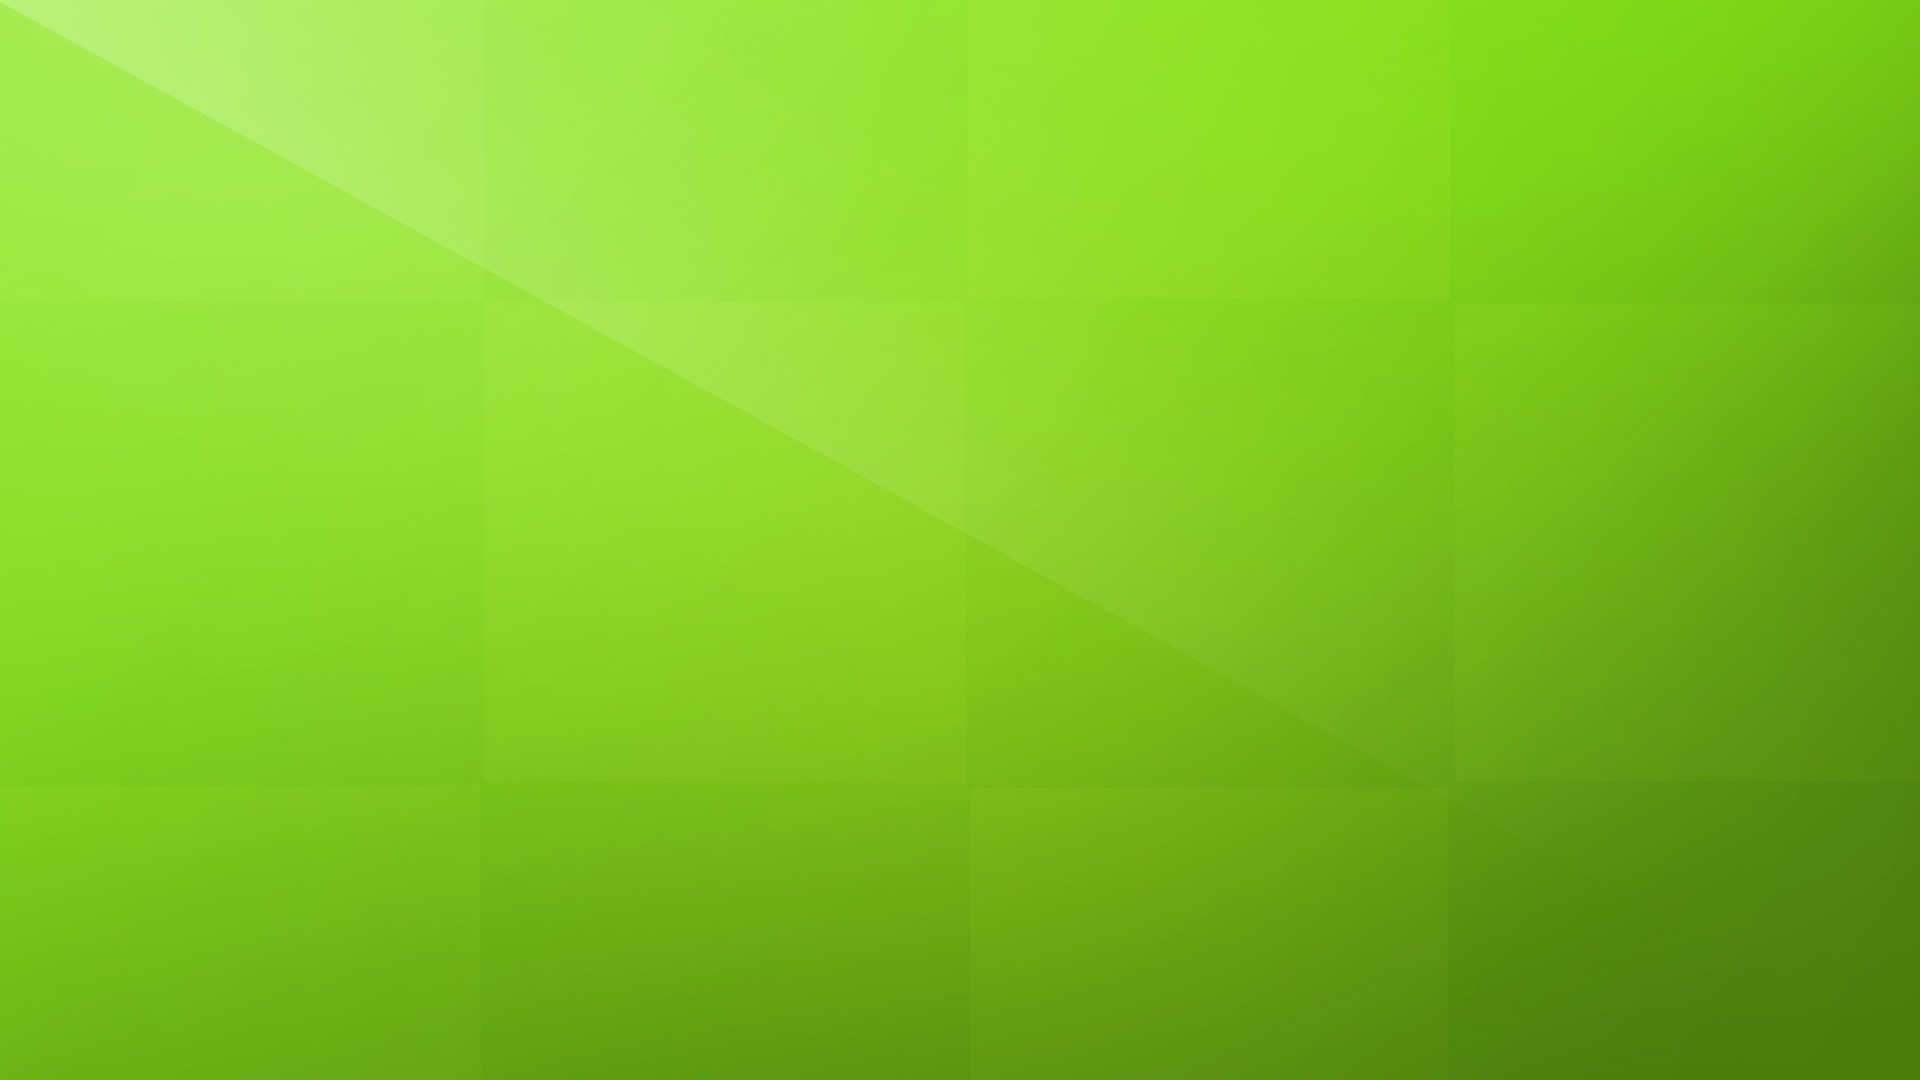 Solid Color Free Wallpaper